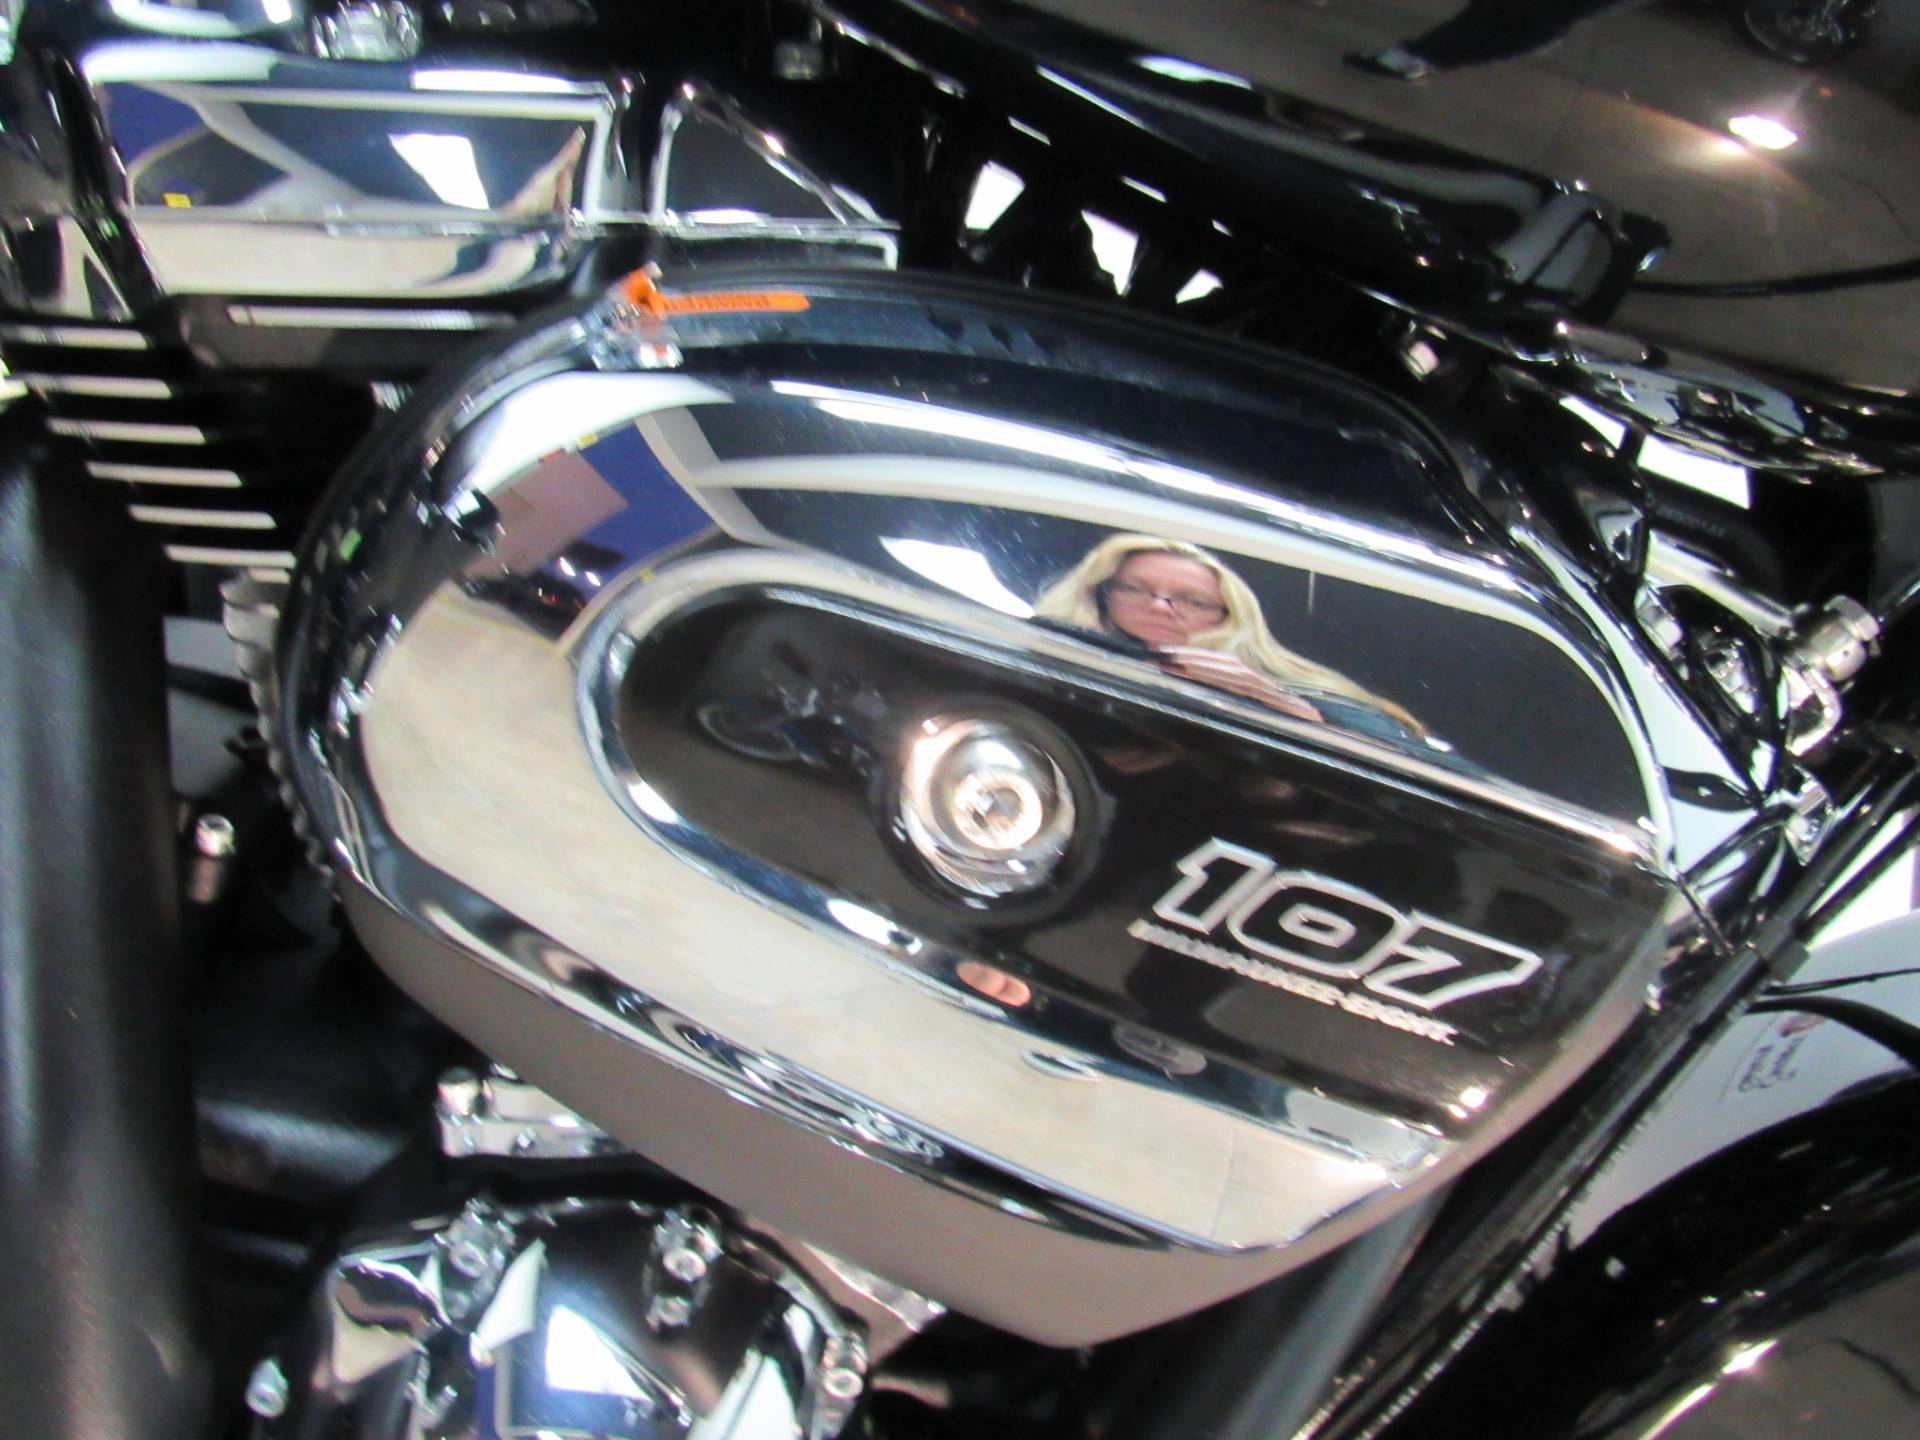 2017 Harley-Davidson Street Glide® Special in Temecula, California - Photo 4